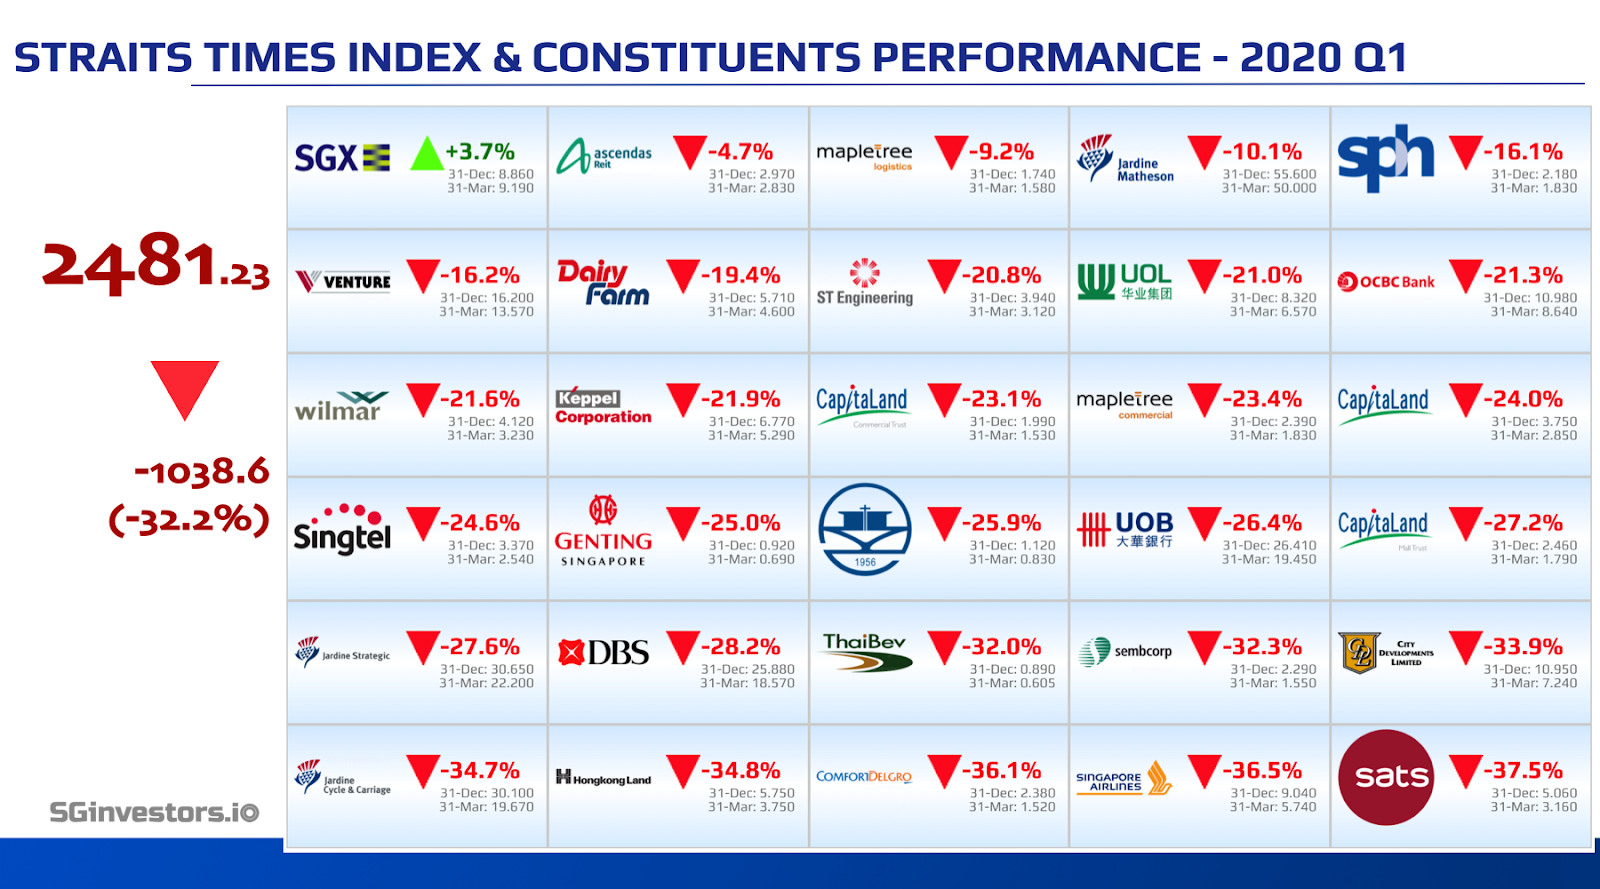 Performance of Straits Times Index (STI) Constituents in 2020 Q1